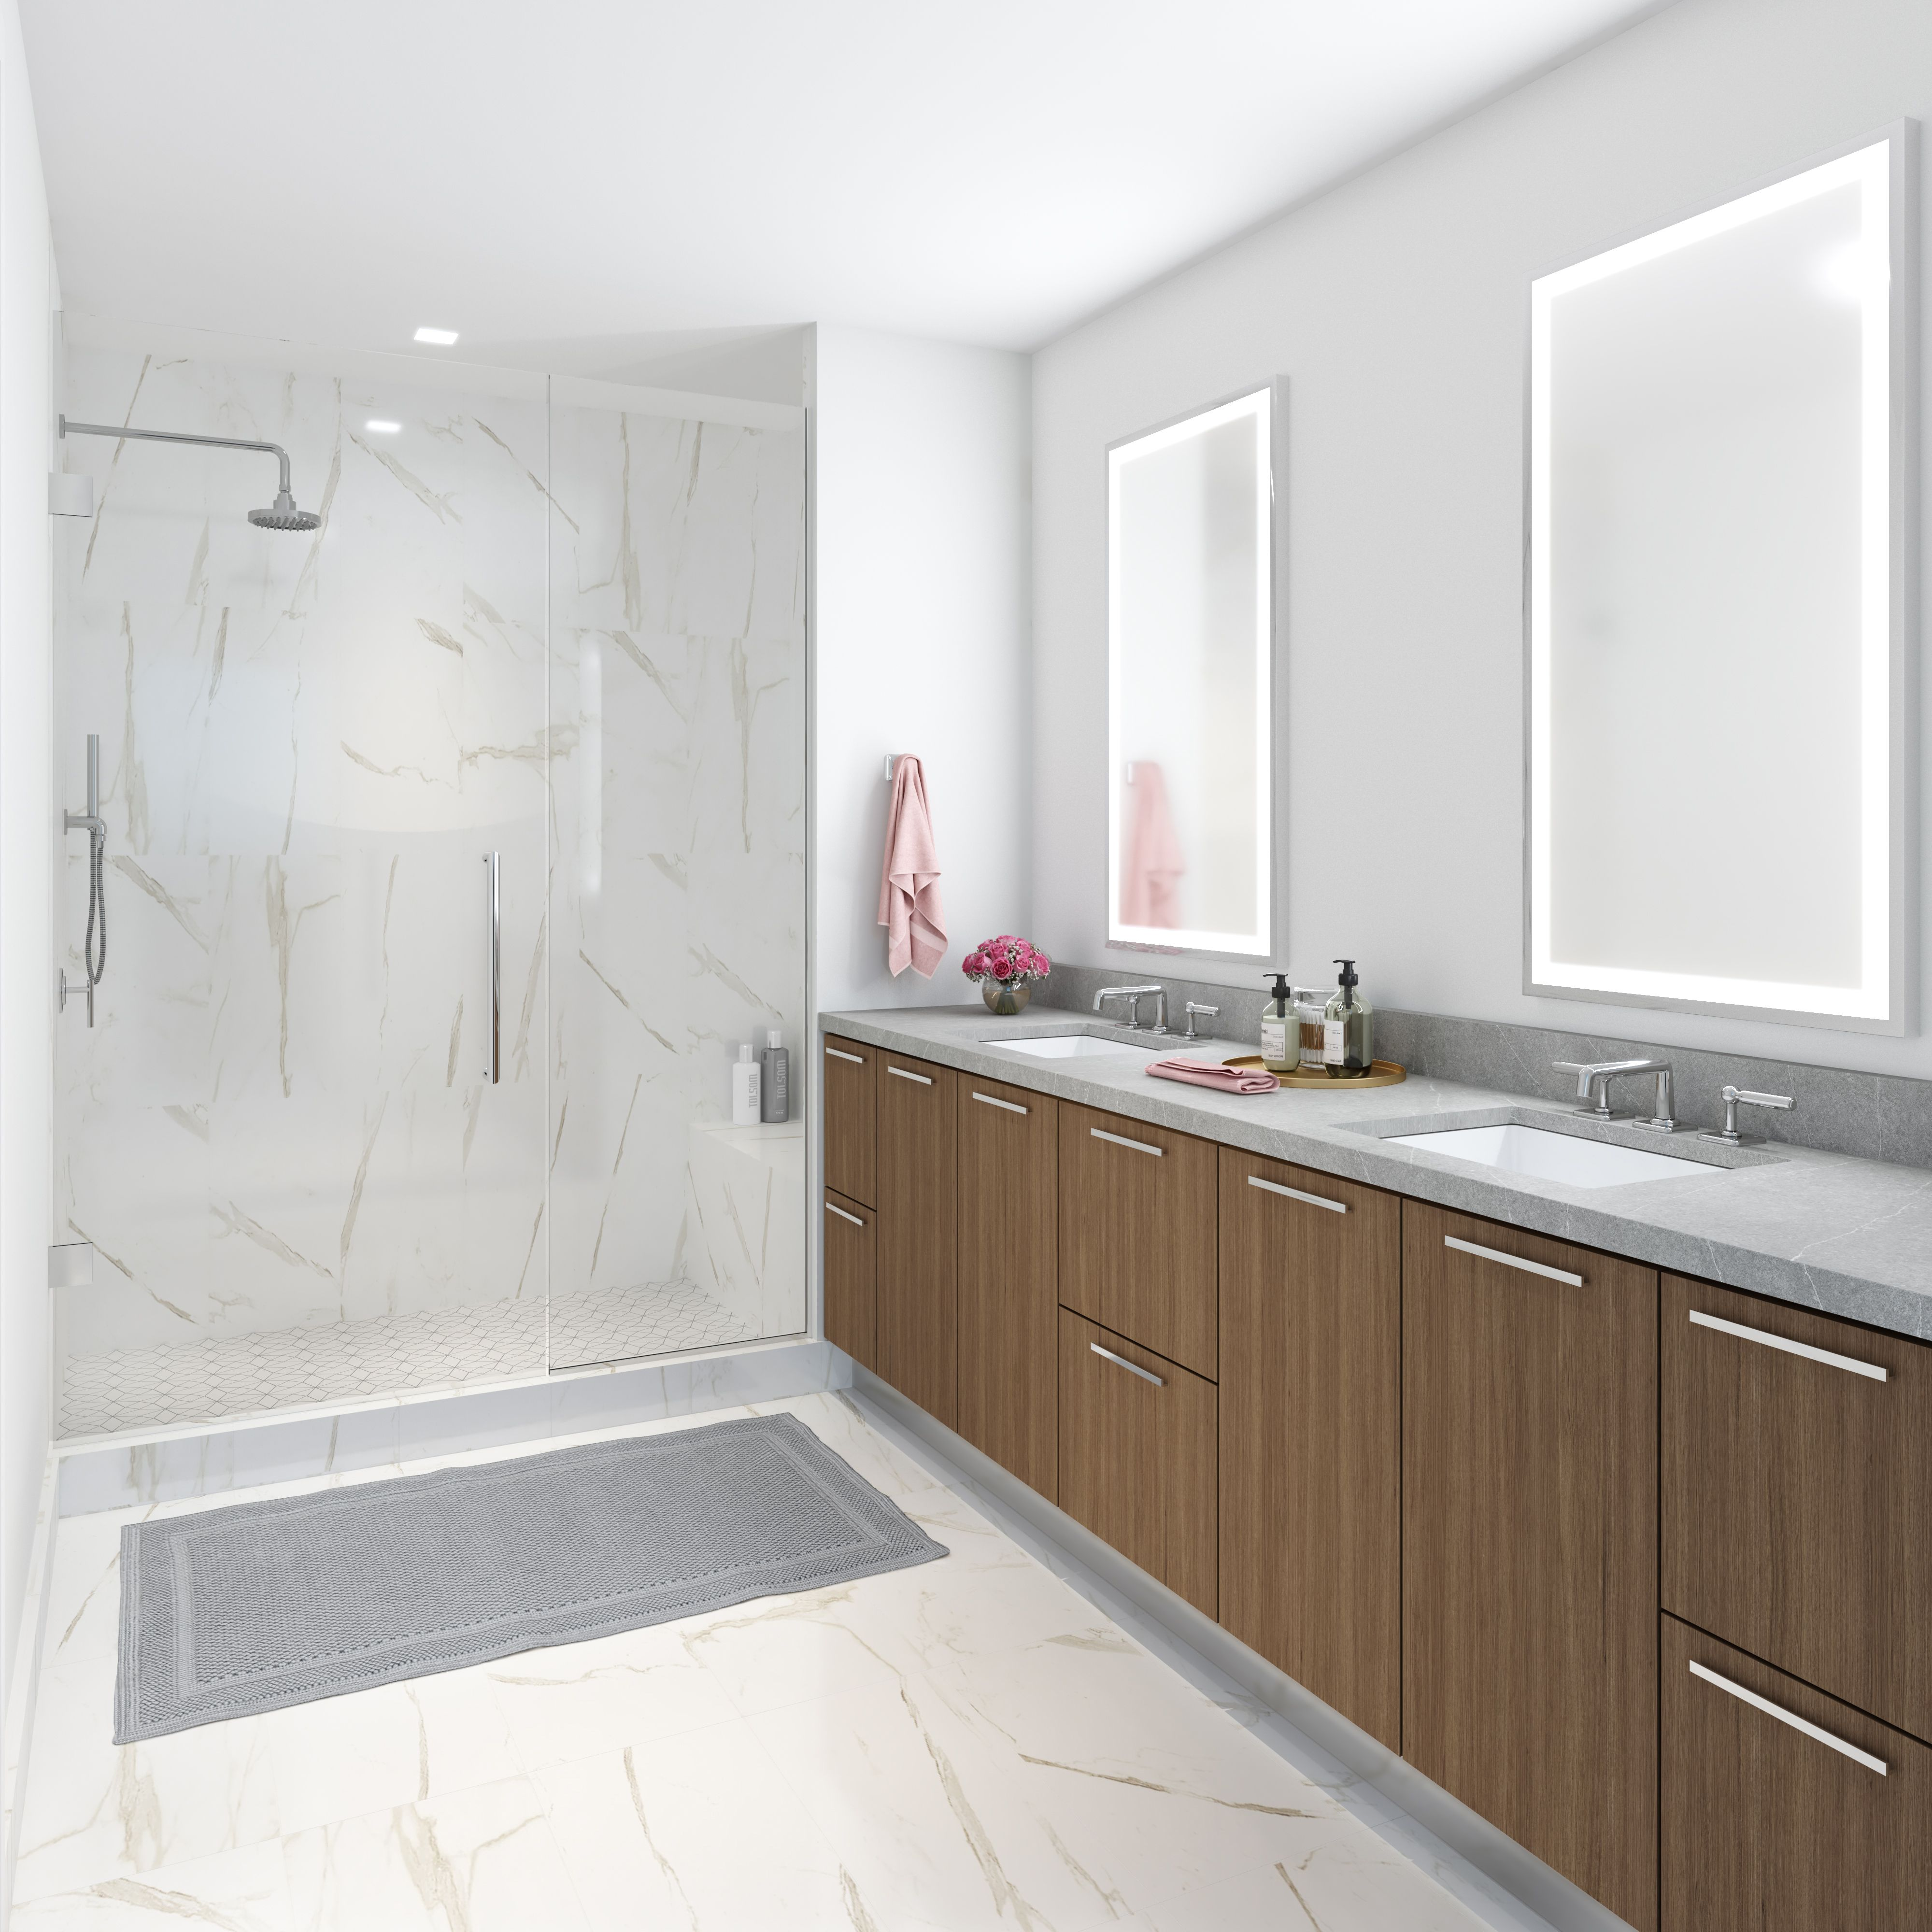 Bathroom featured in the Residence C3 By MUSE in Washington, VA